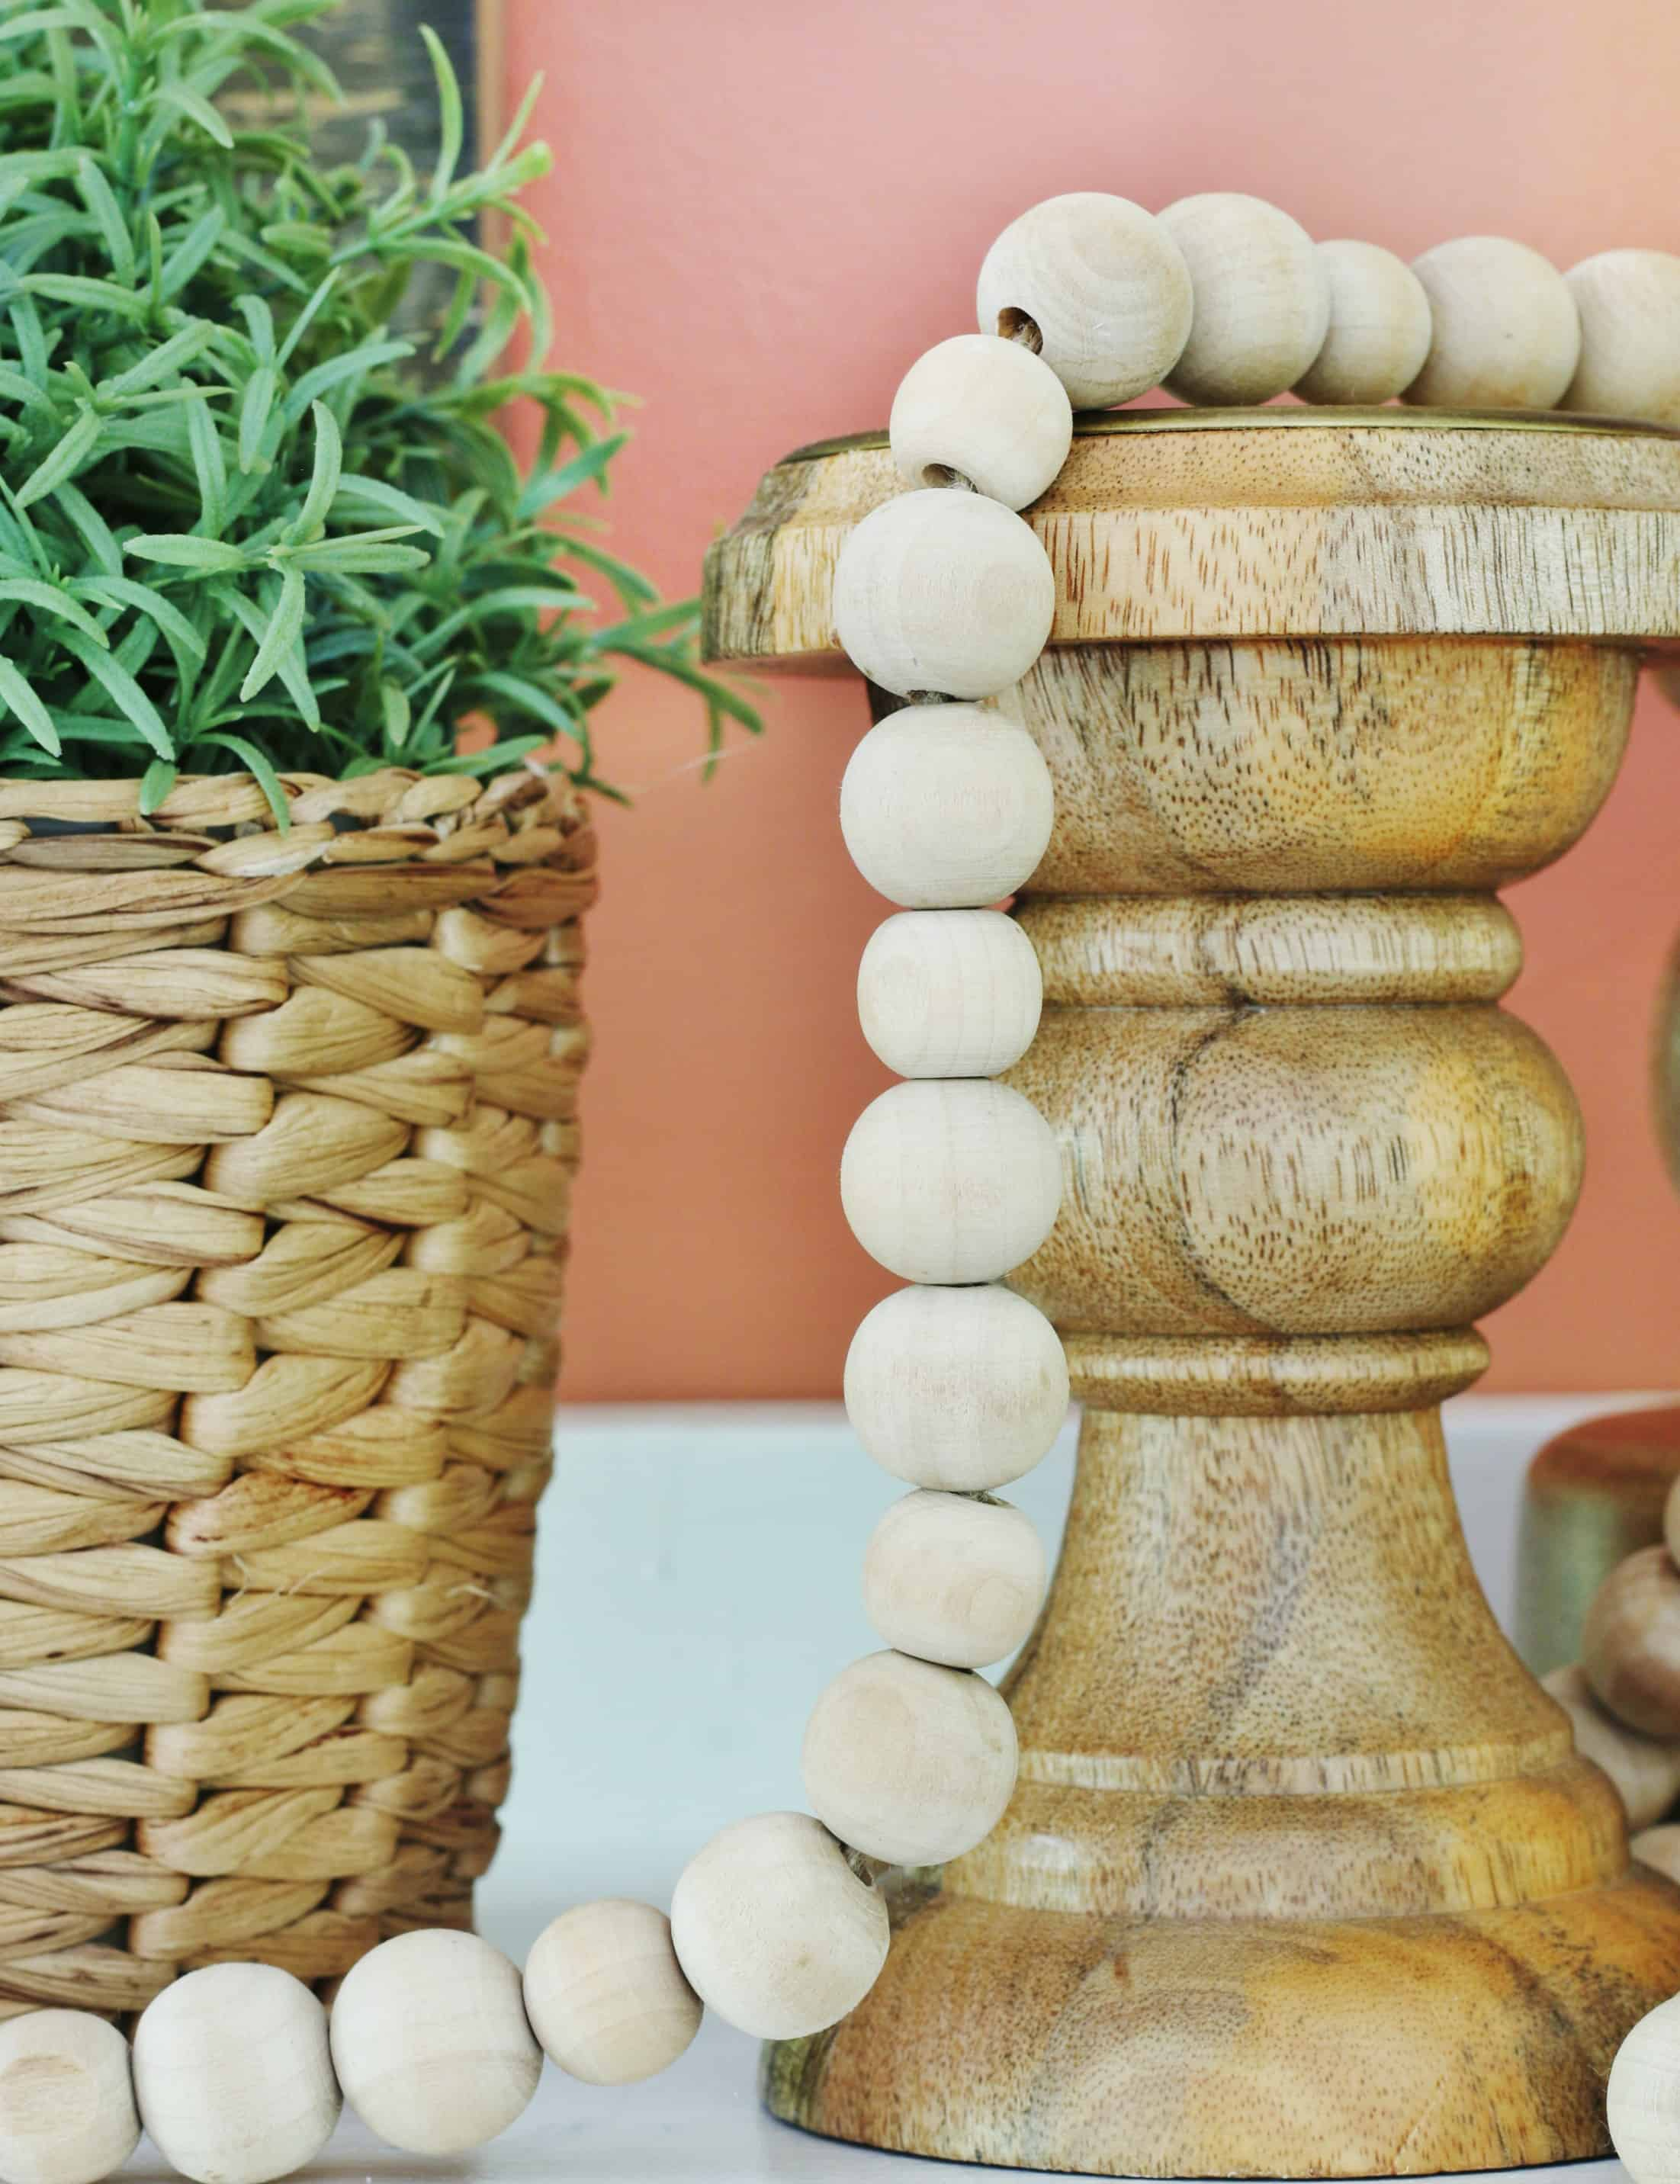 Mantle decorations of a trio of wood candlesticks, wood beads and a small potted plant in a basket